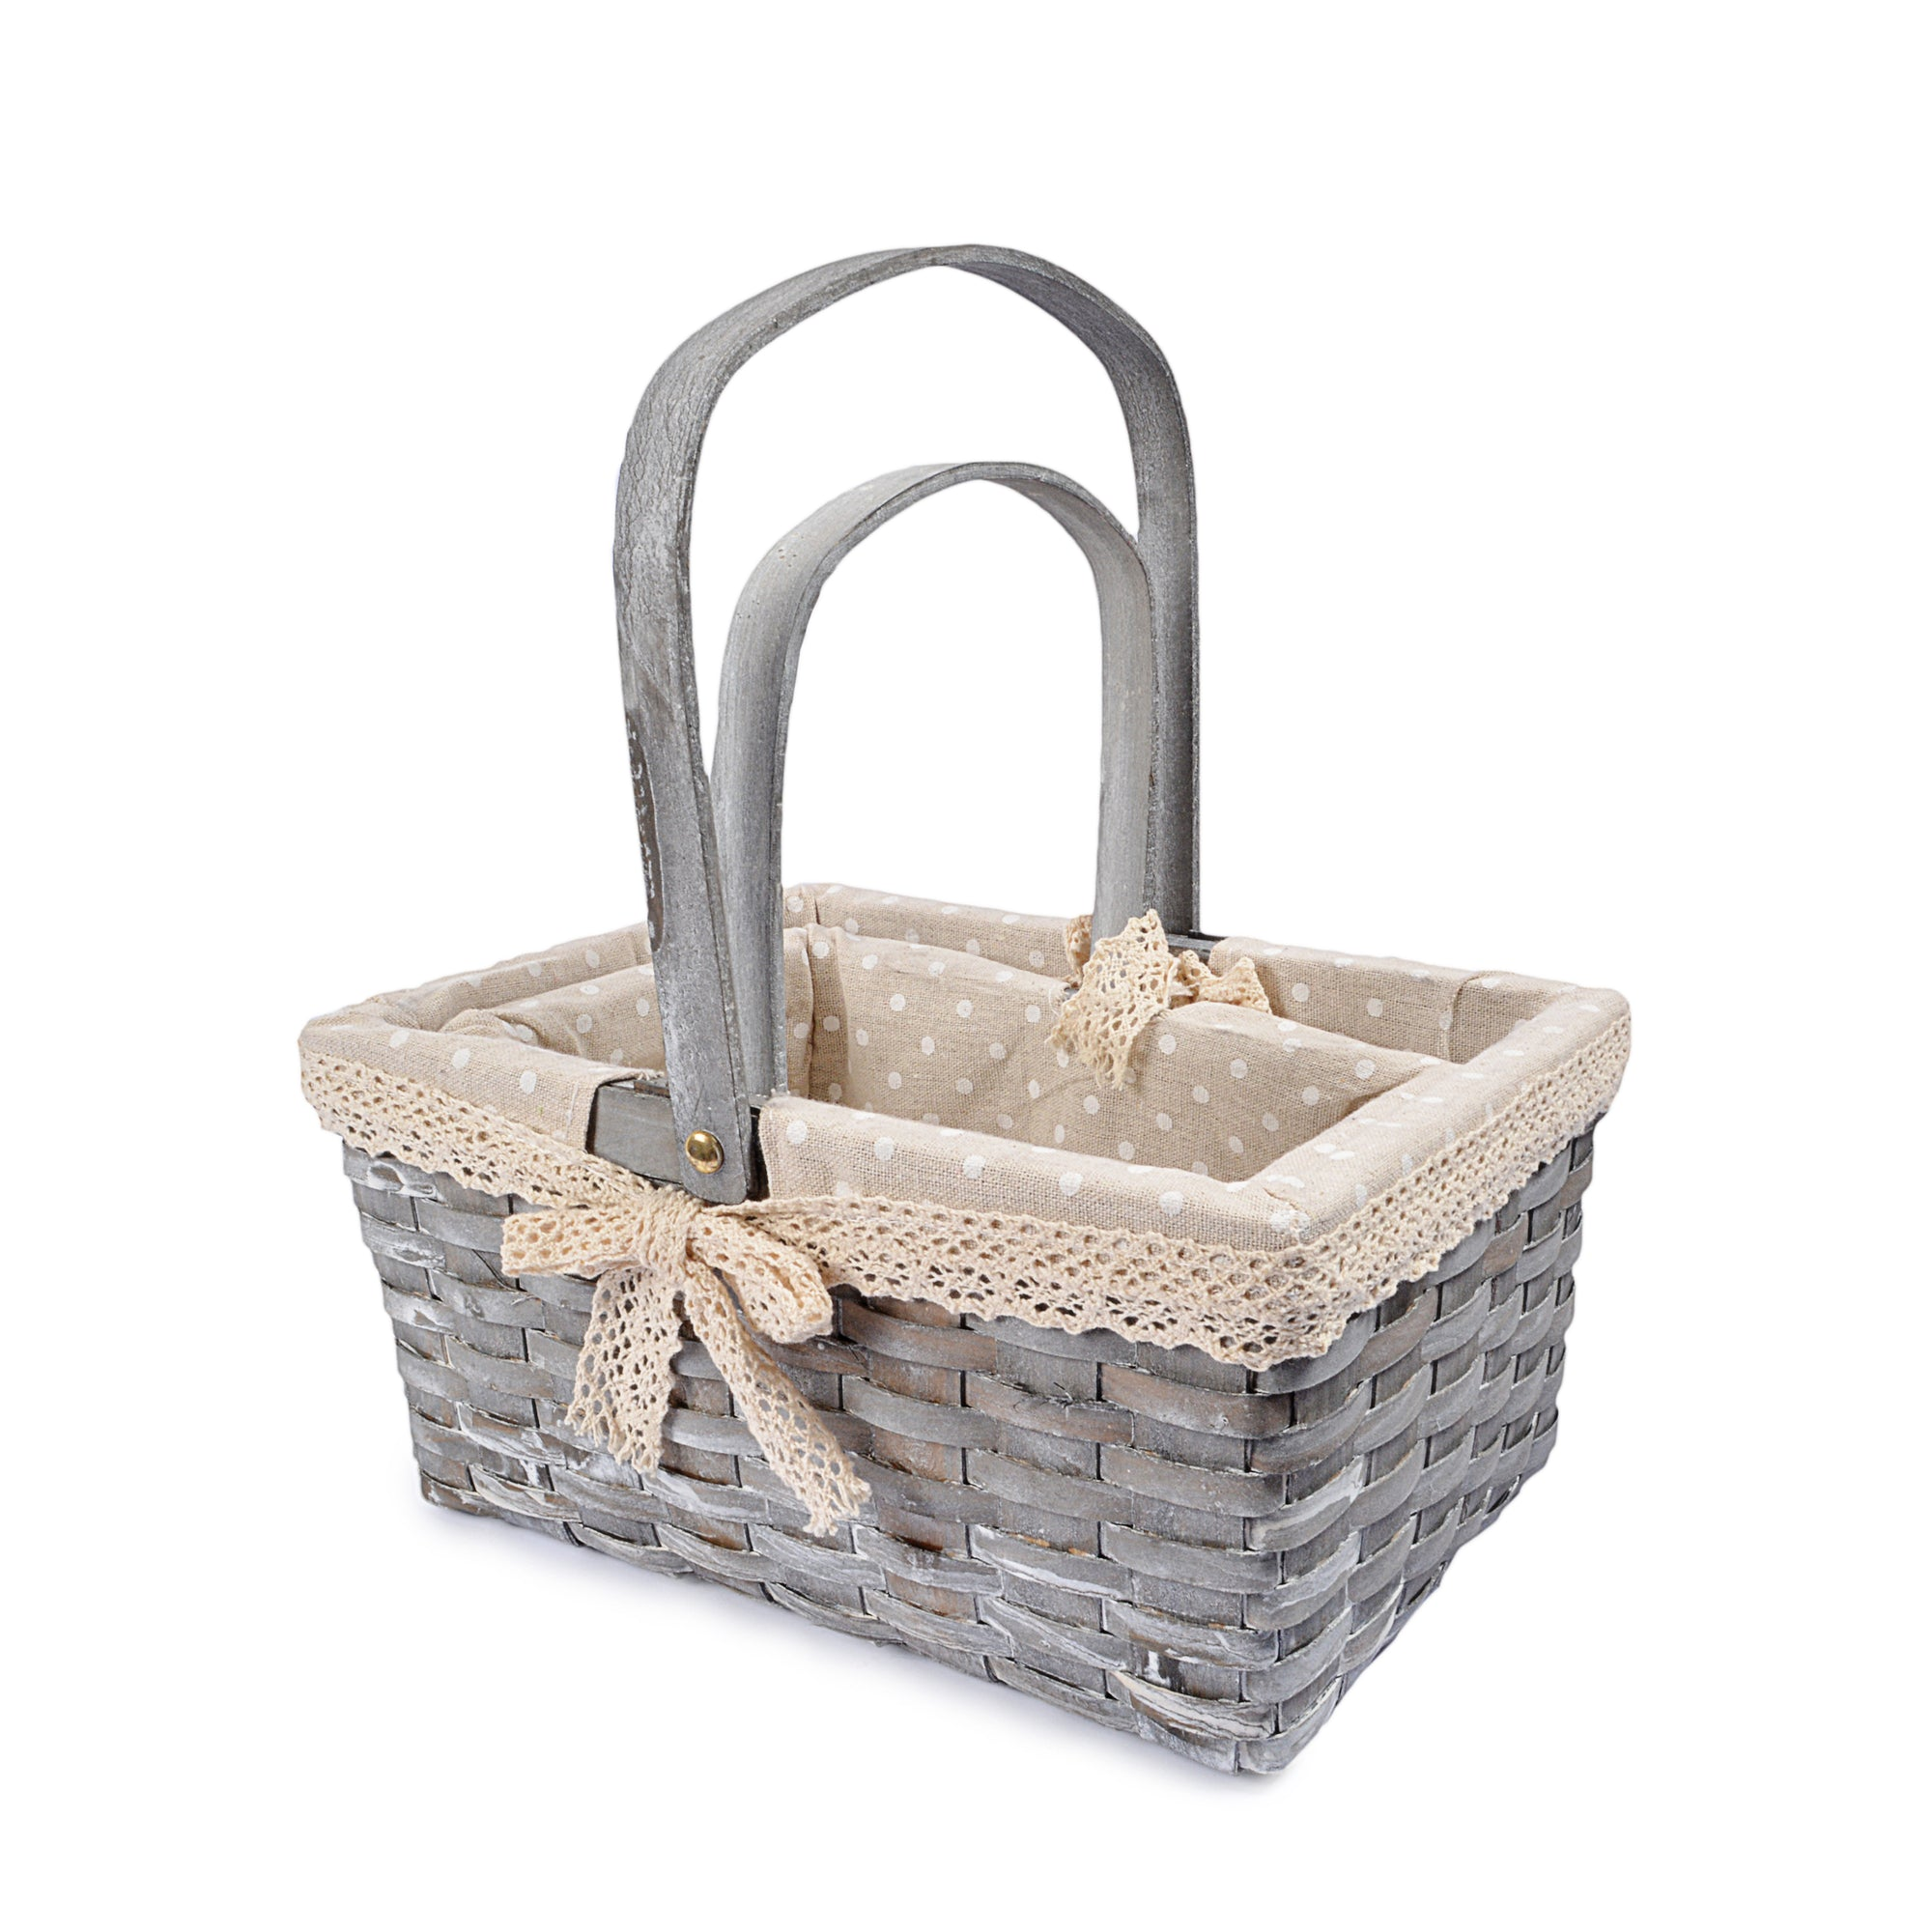 Multipurpose Fabric Braided Baskets with Handles (Set of 2)